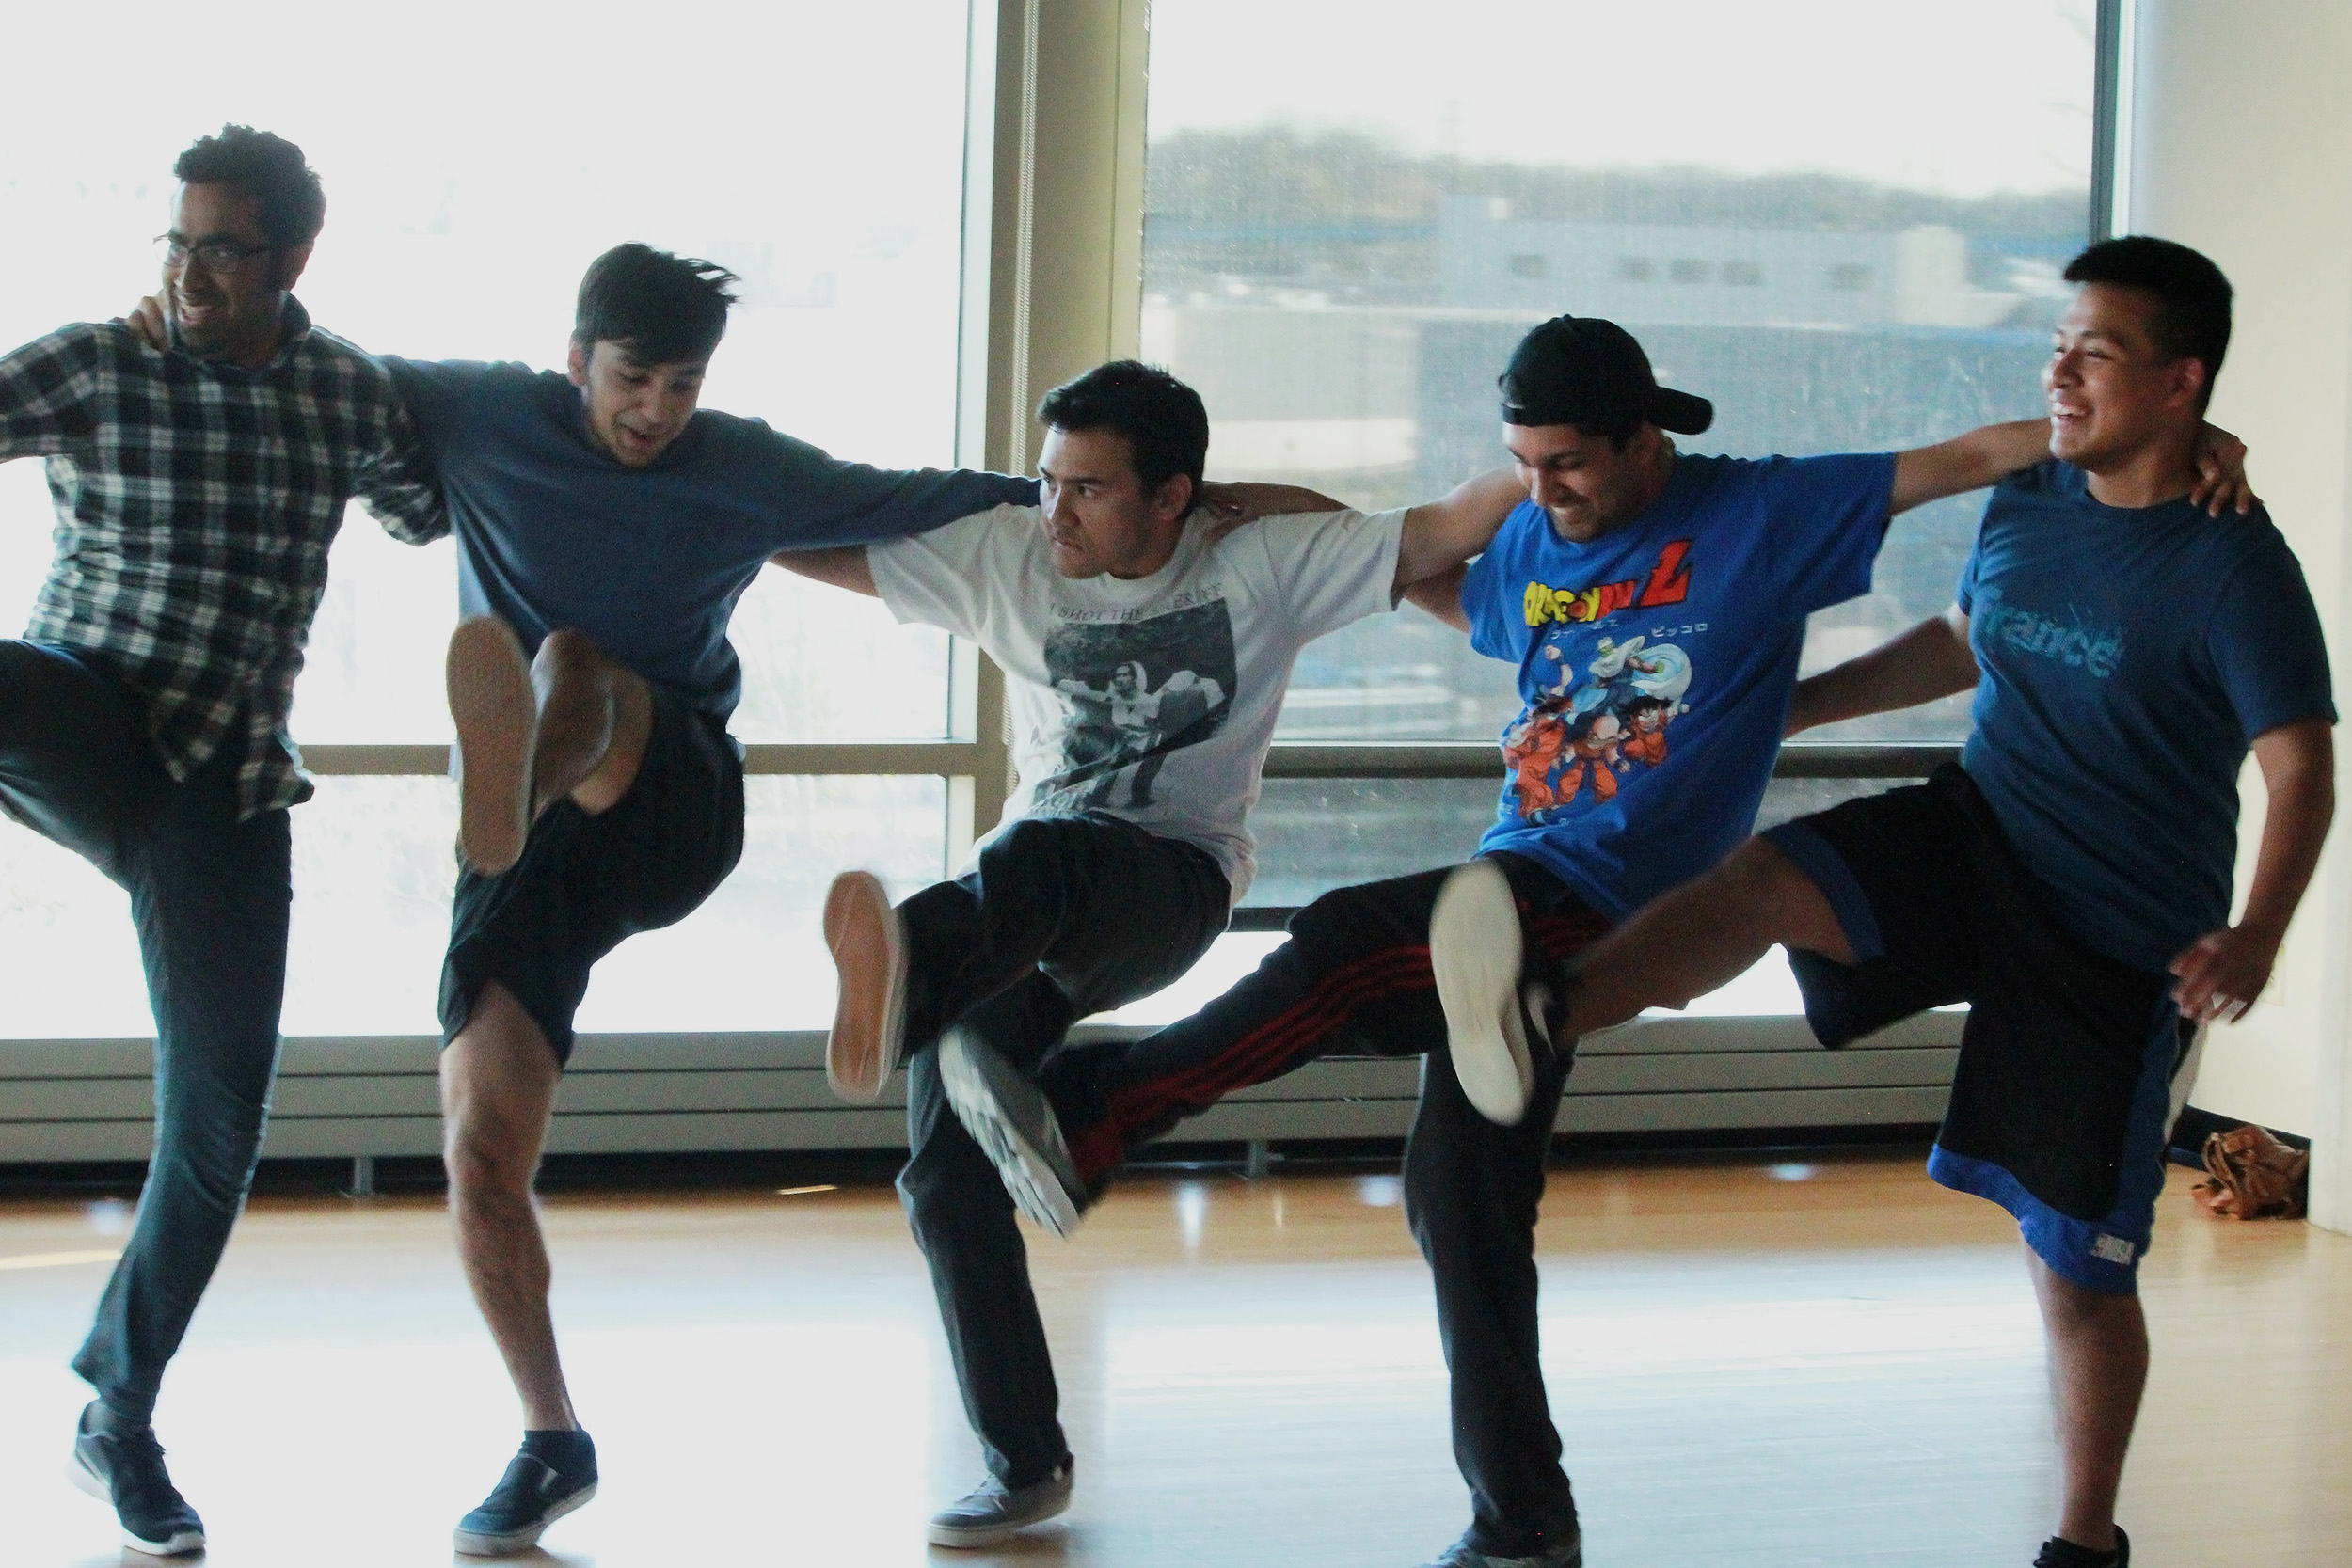 Students learn Merengue and Bachata styles of dance, as well as Salsa dancing.